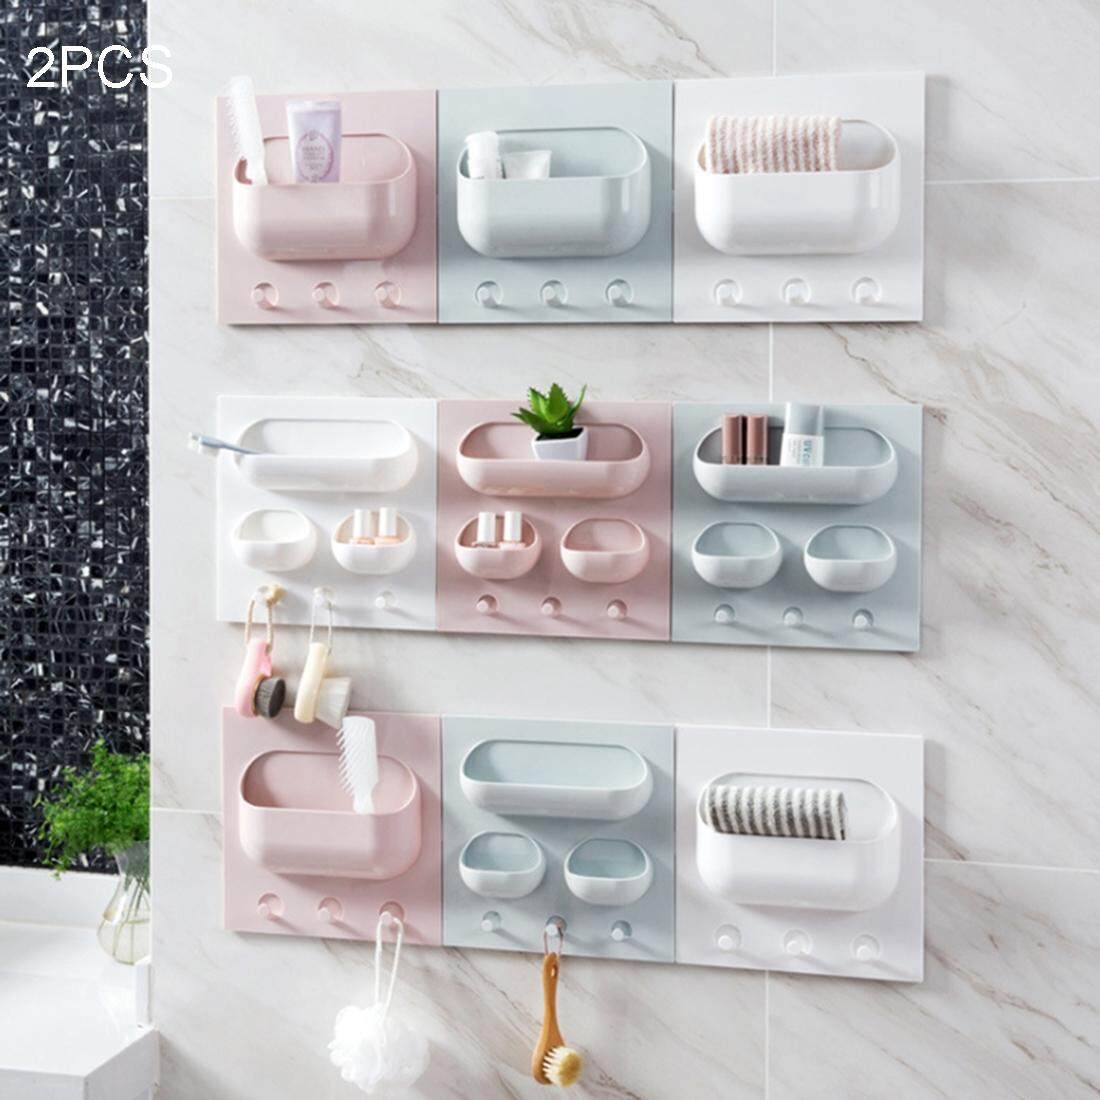 2 PCS Multi-function Kitchen Bathroom Traceless Strong Paste Plastic Shelves, Random Color and Style Delivery